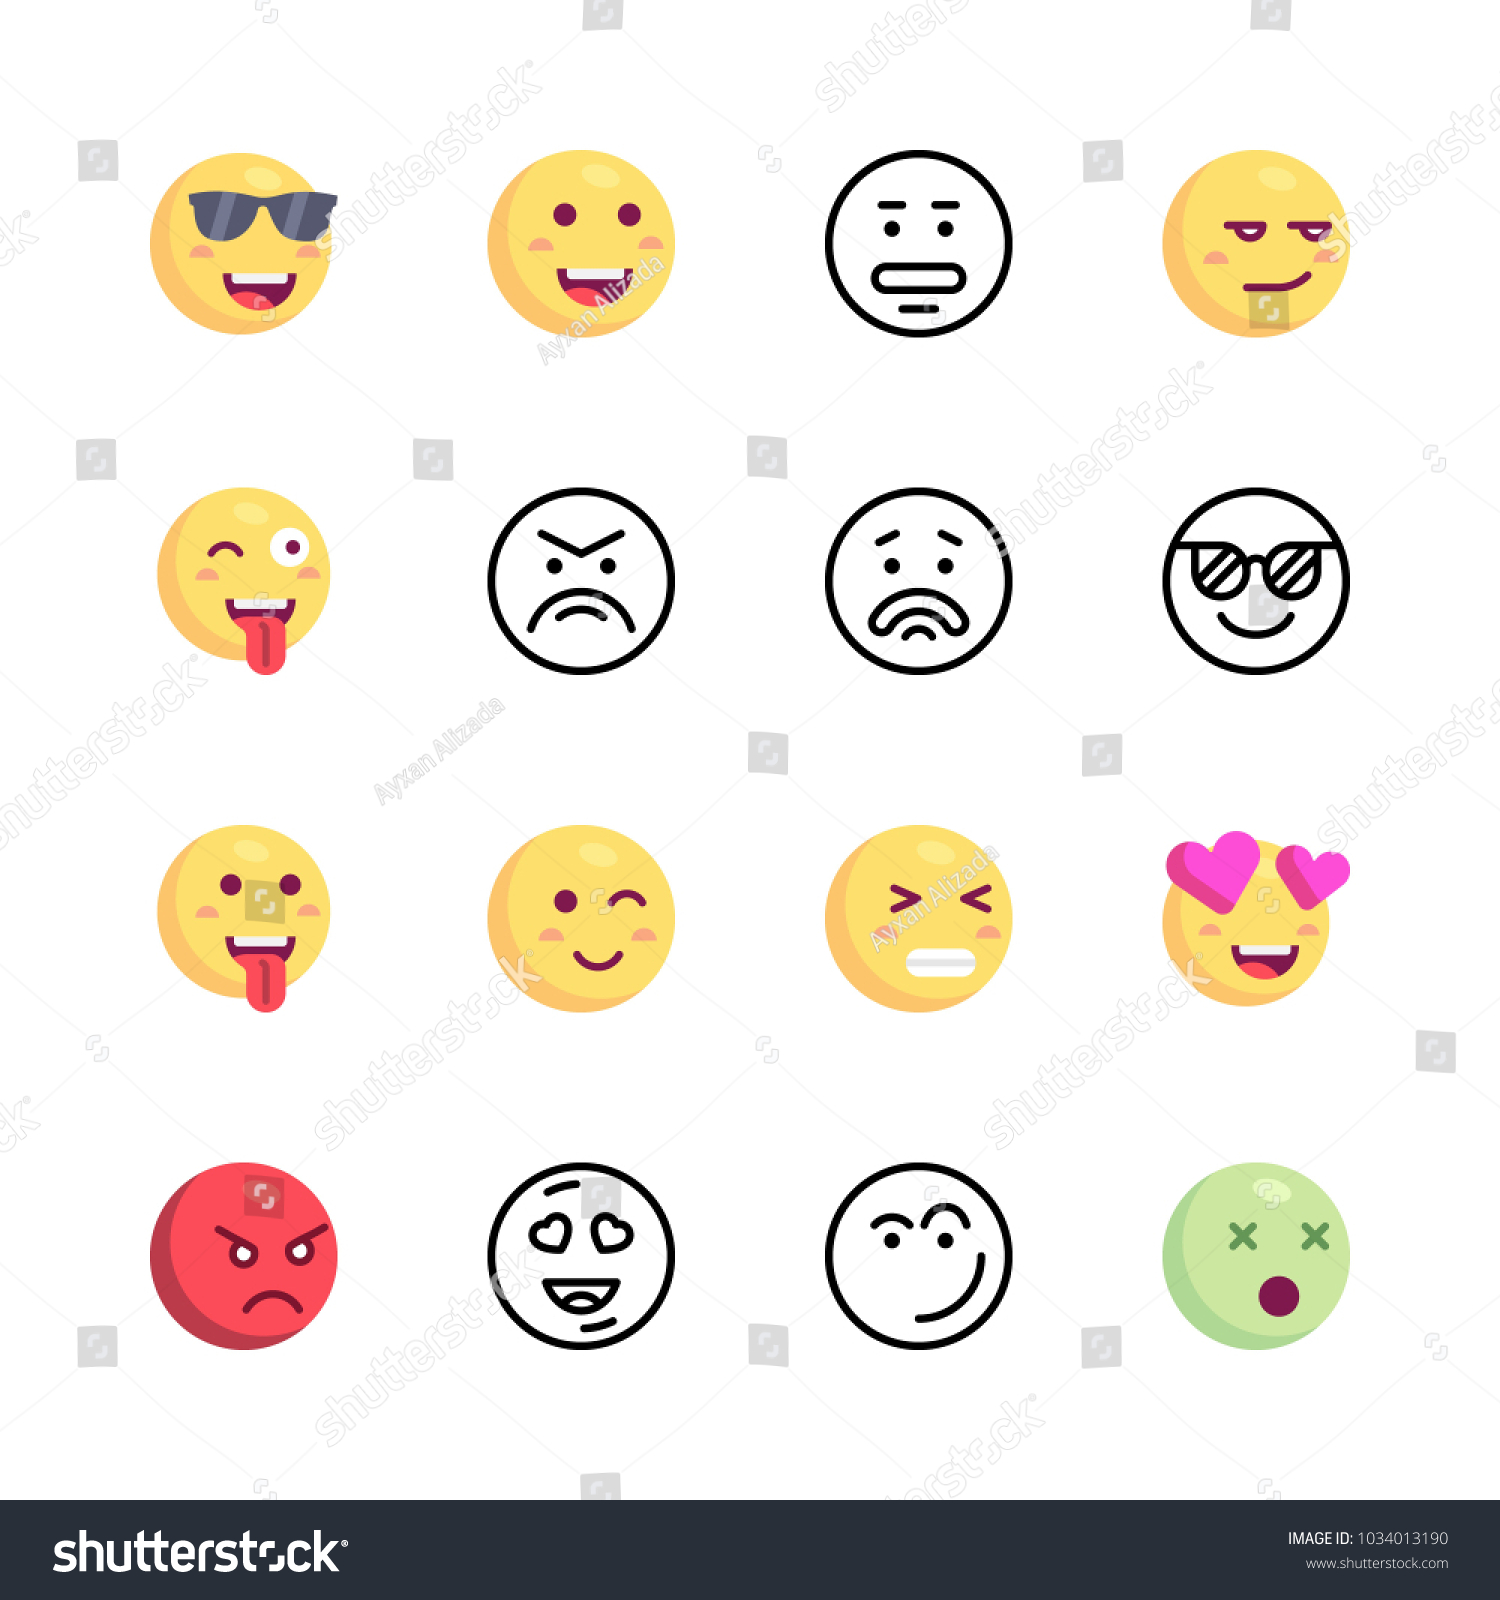 Icons emoji vector happy emoji cool stock vector 1034013190 icons emoji vector happy emoji cool emoji and angry biocorpaavc Images